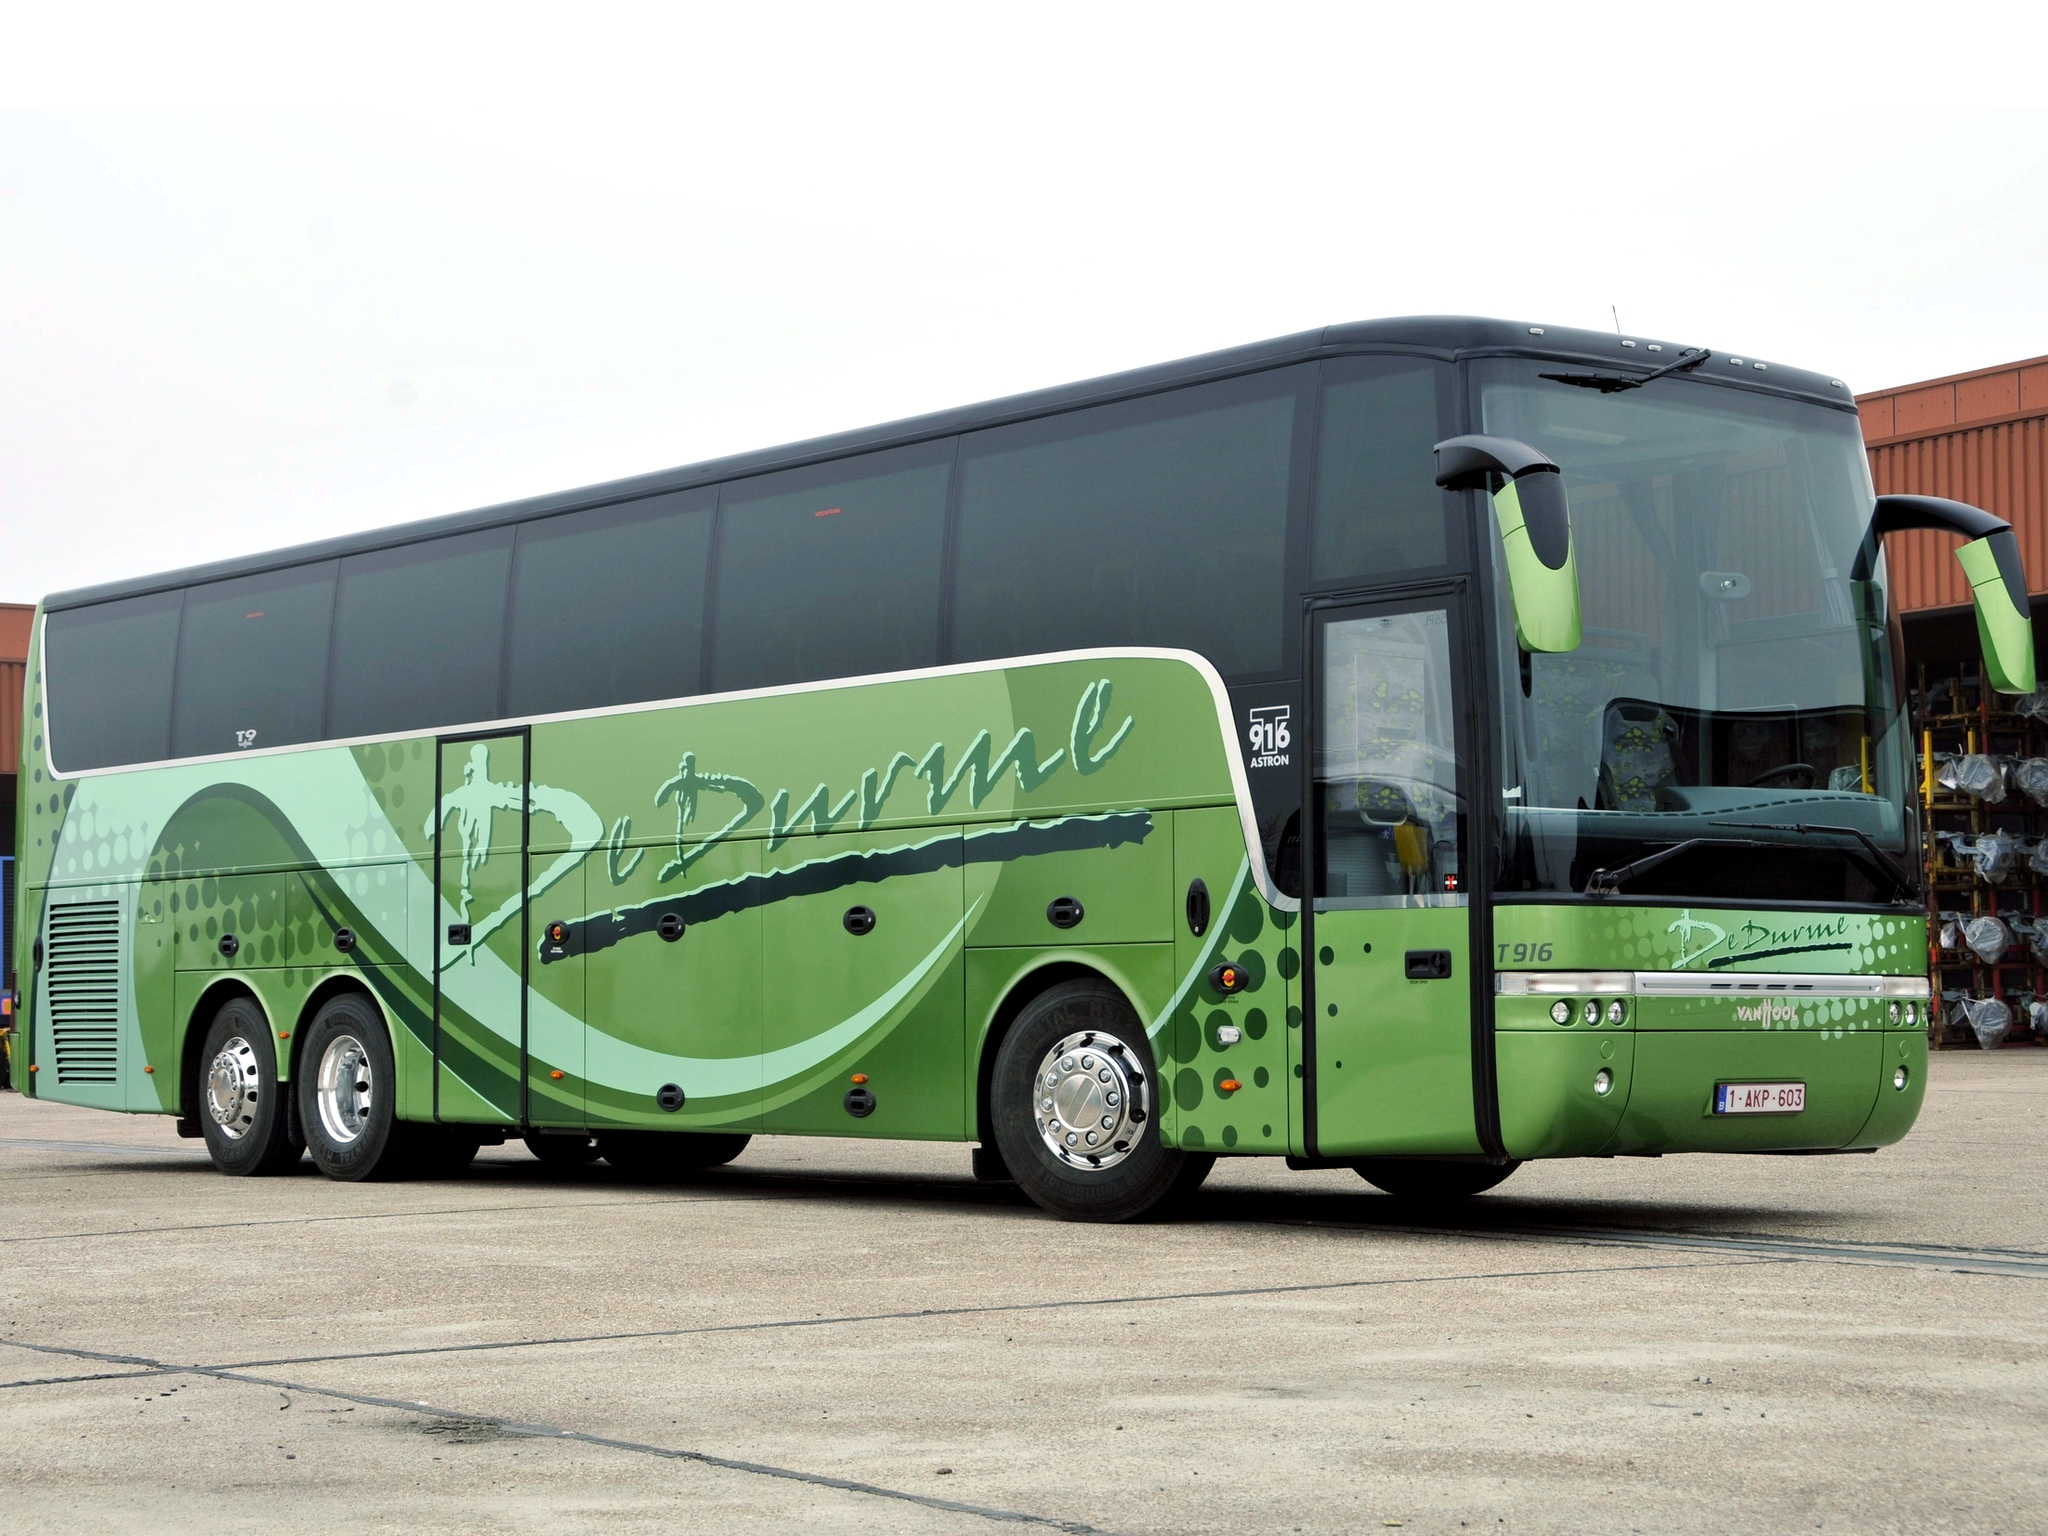 Van hool t916 photo - 10